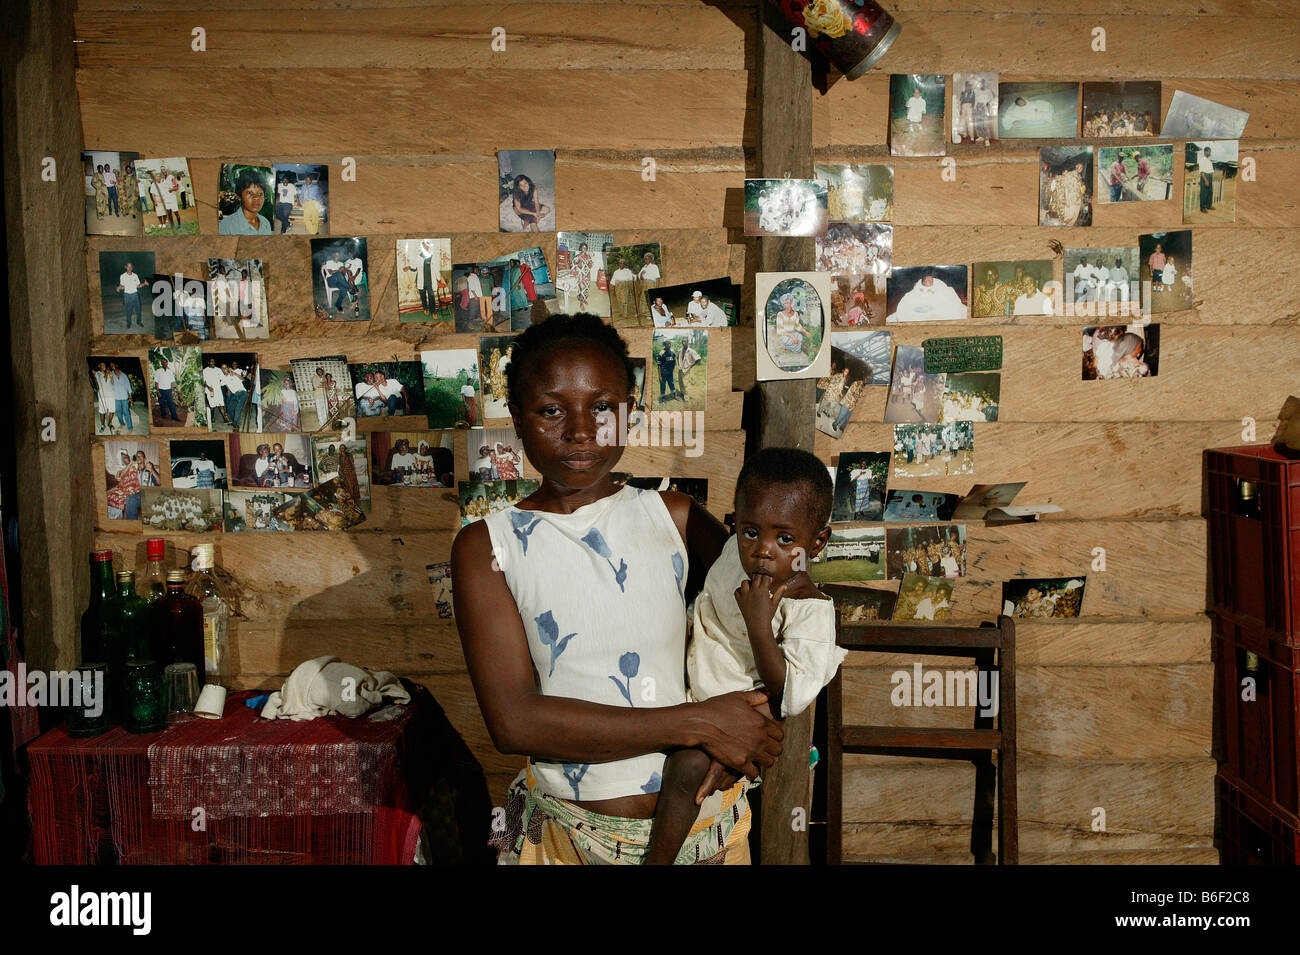 AIDS/HIV positive woman with her child, portrait, in her flat, Manyemen, Cameroon, Africa - Stock Image